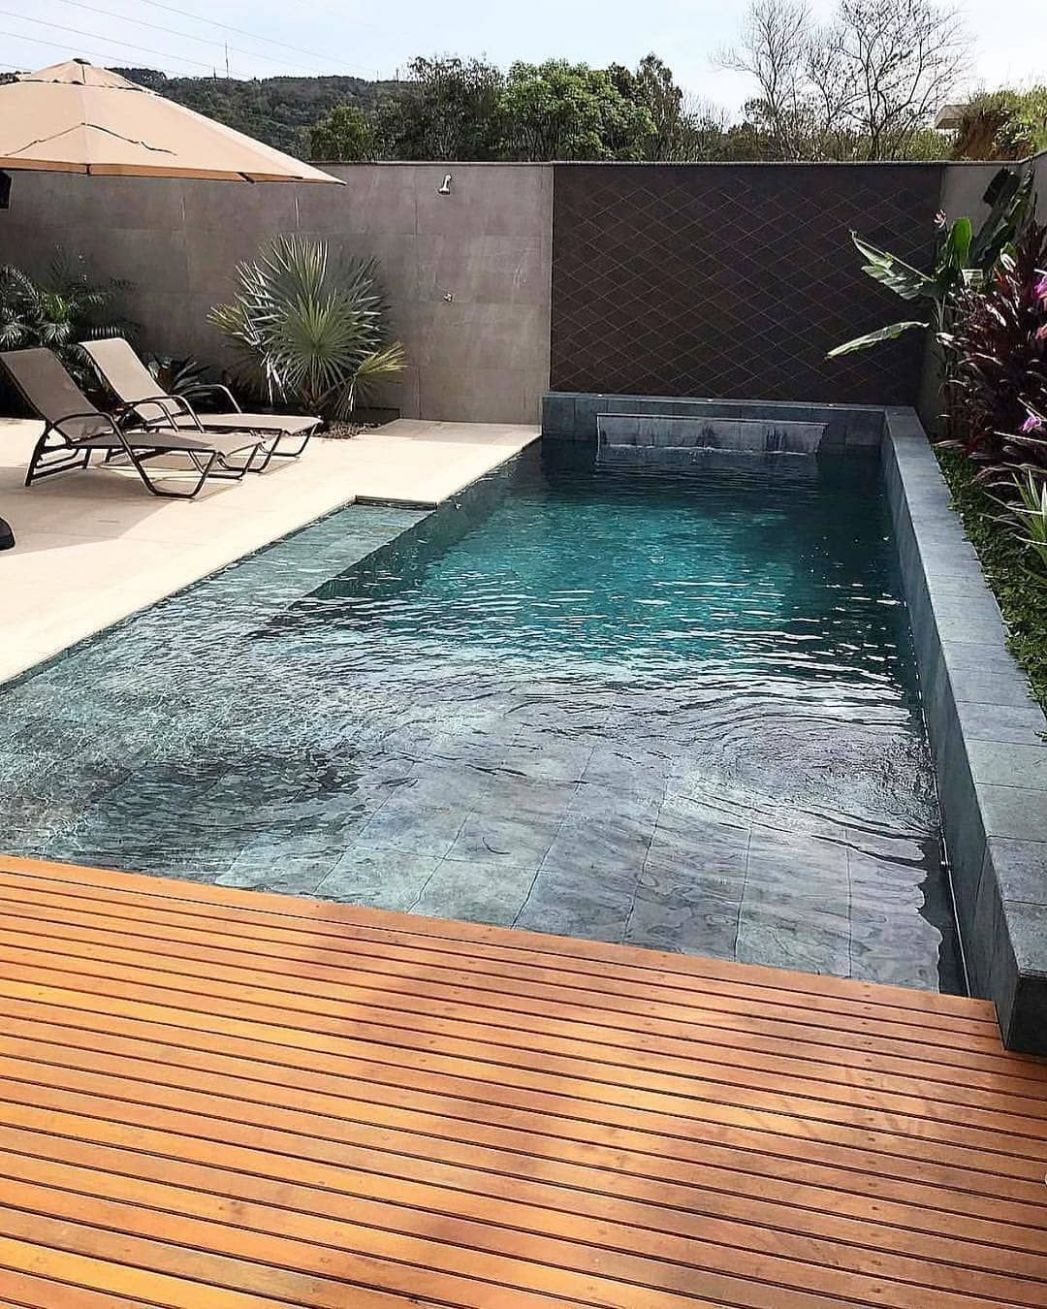 10 Best Swimming Pool Designs [Beautiful, Cool, and Modern ...